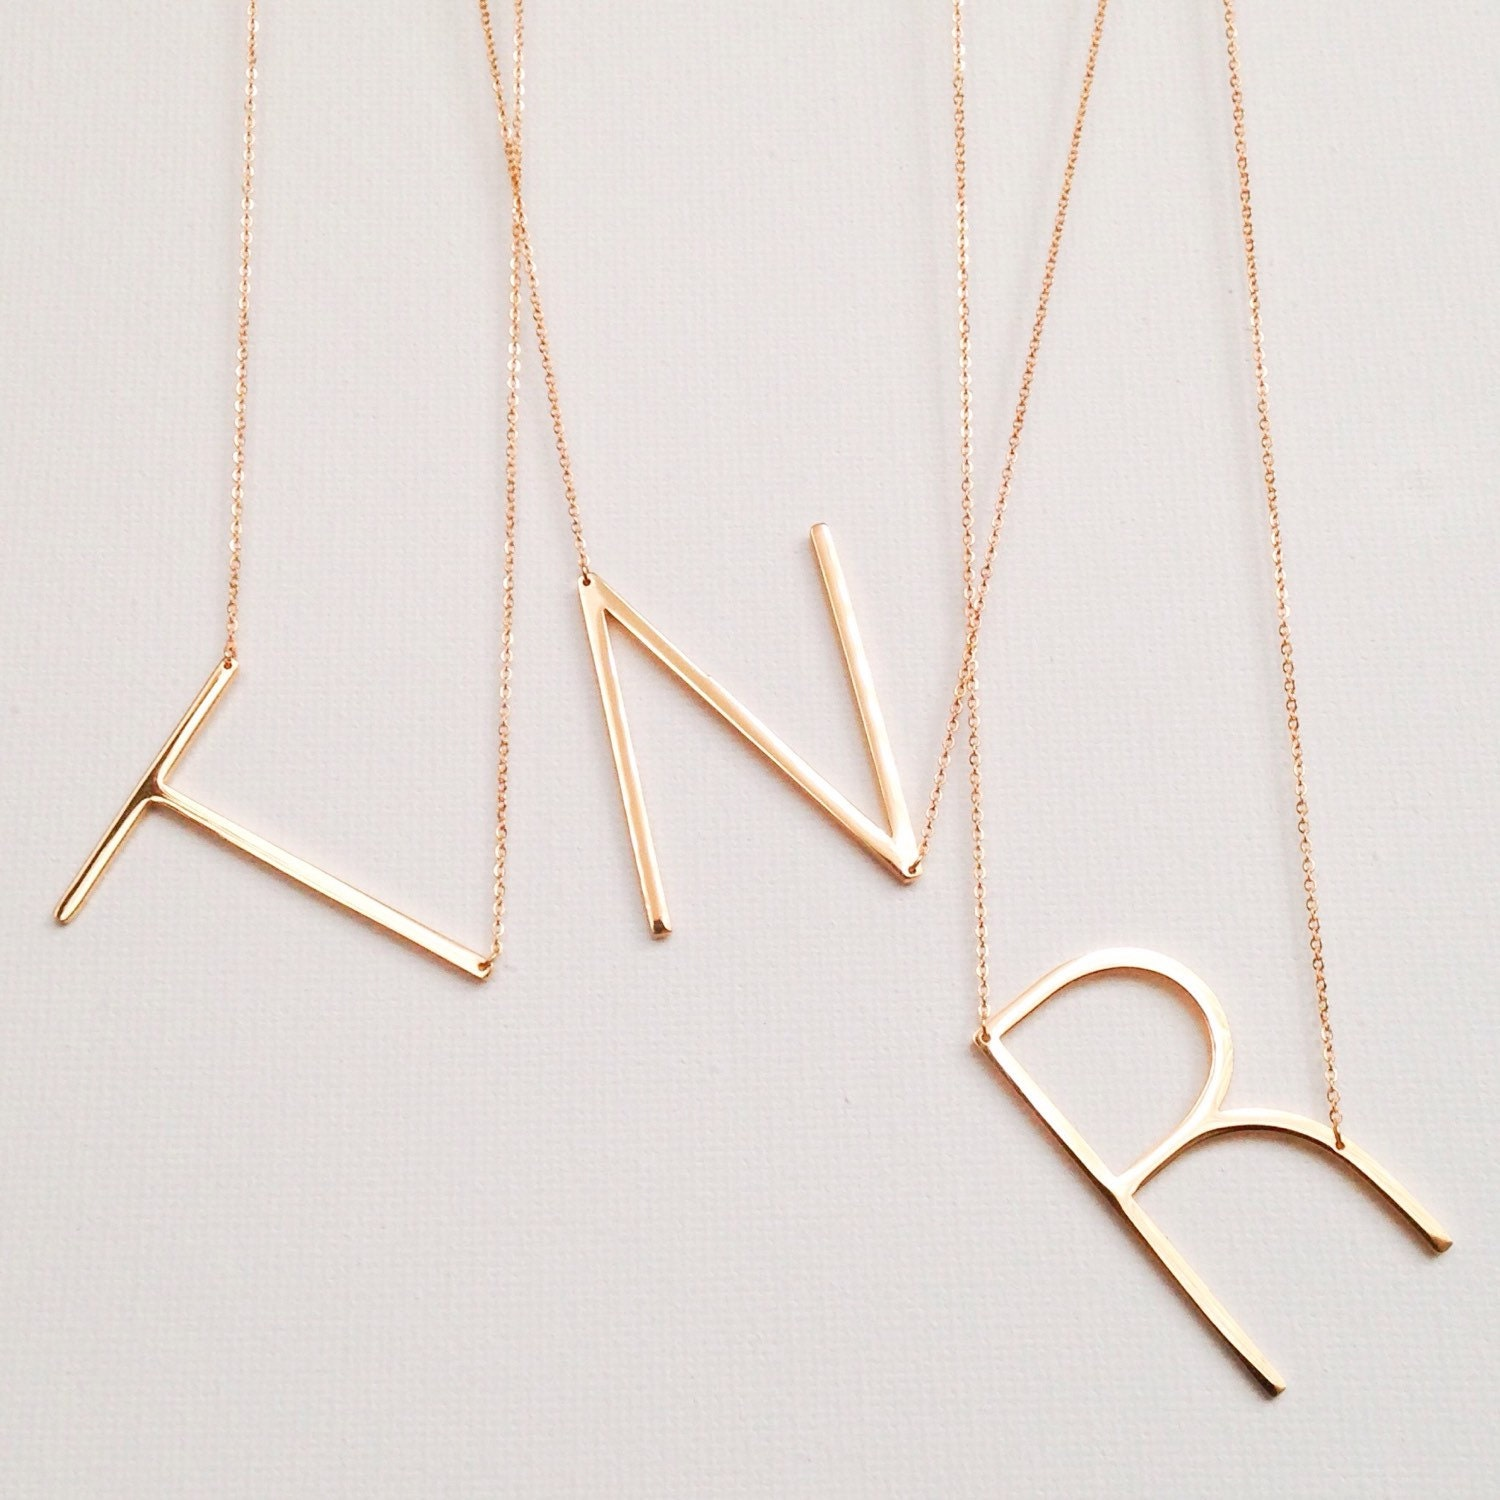 initials initial necklace asymmetrical chains necklaces diamond pin